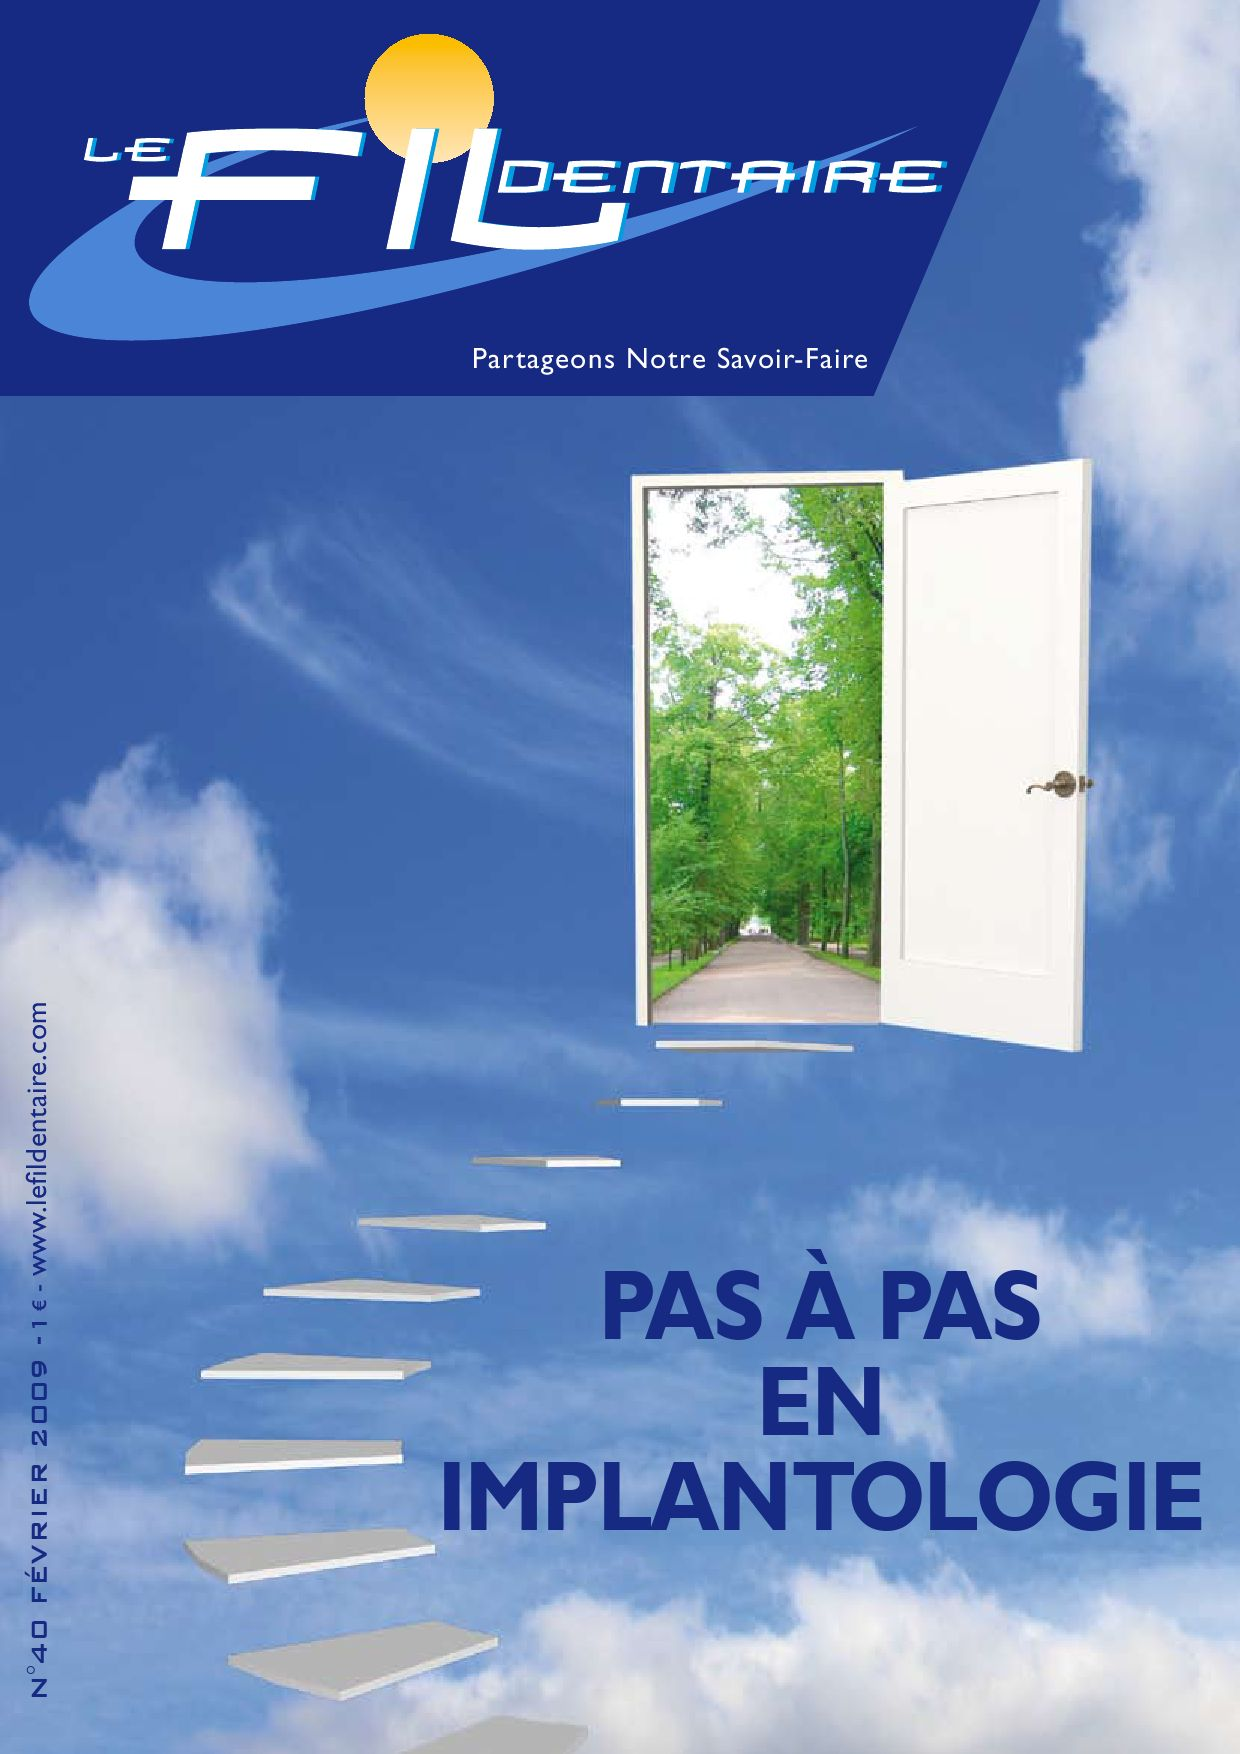 5fc8f3793a12d9 Protegeons notre savoir faire. by fil dentaire shinobi - issuu